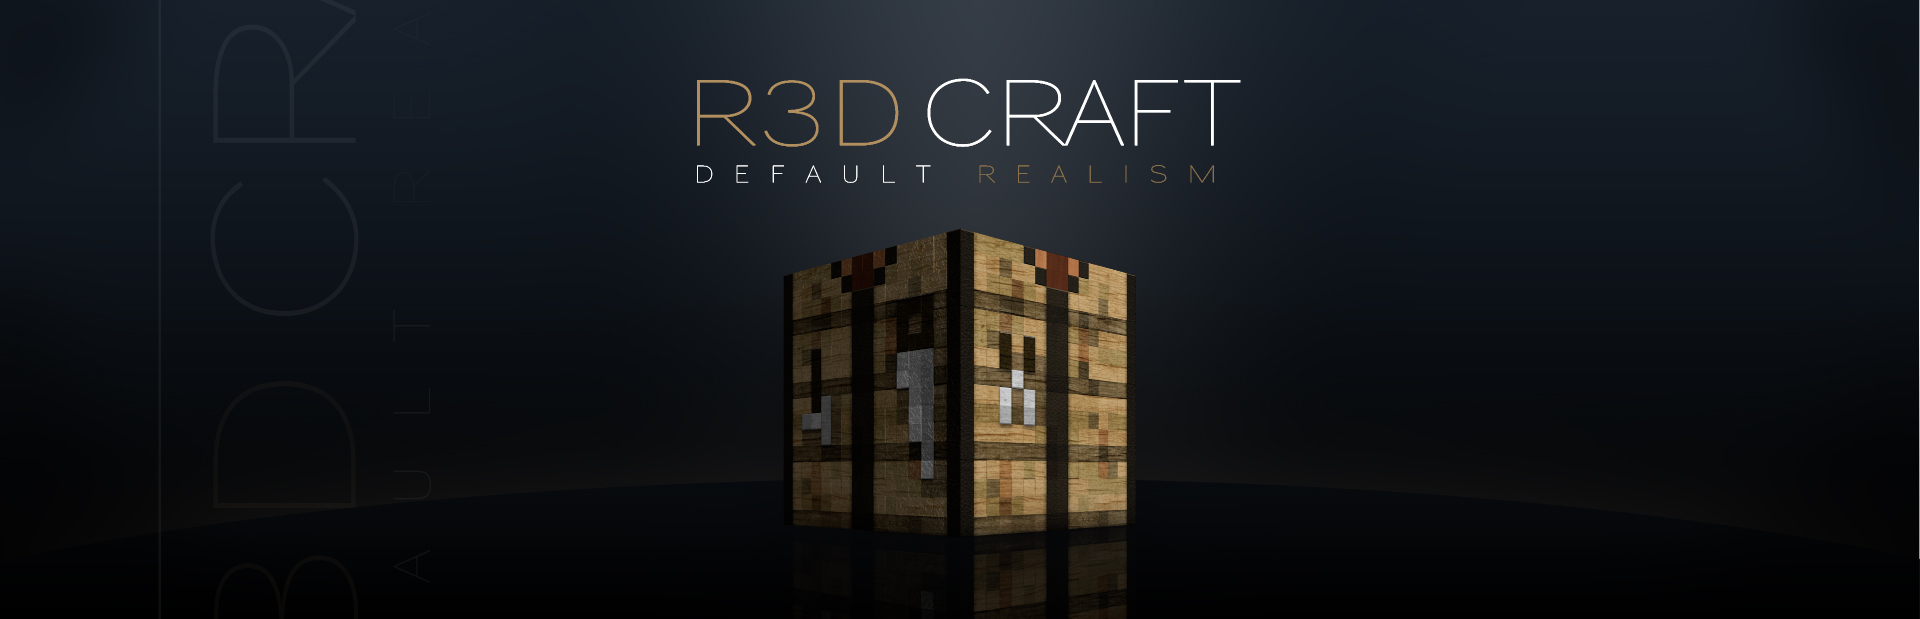 3f398  R3D Craft [1.4.7/1.4.6] [32x] R3D.CRAFT Texture Pack Download